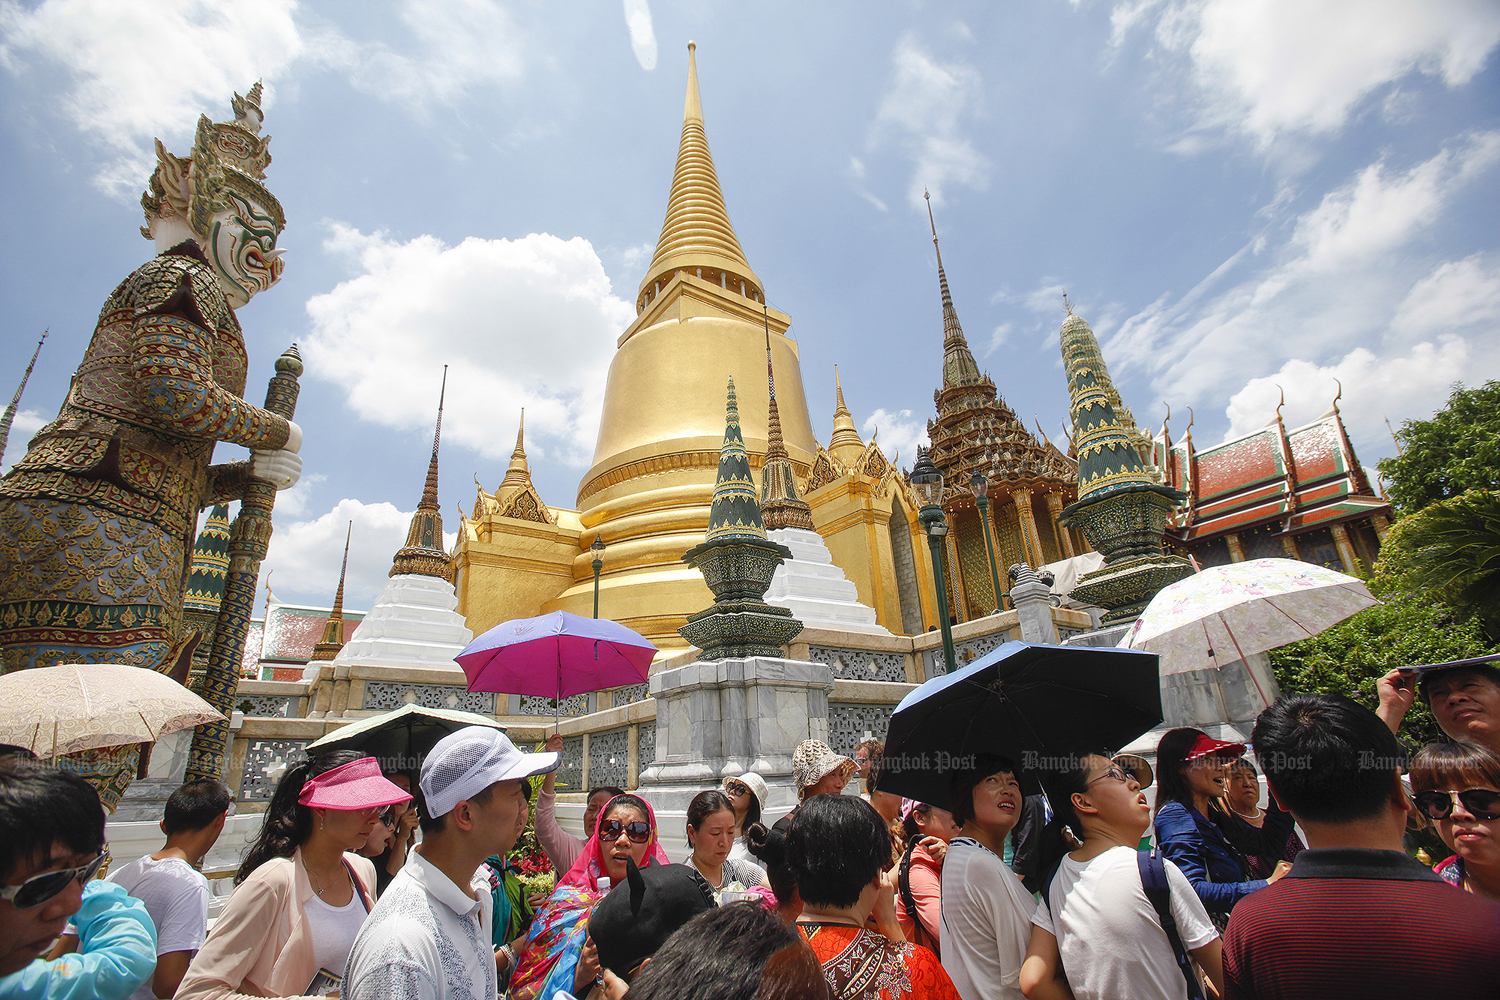 Visitors are seen at the Grand Palace. Thailand prepares to open more cities for tourists. (Bangkok Post file photo)